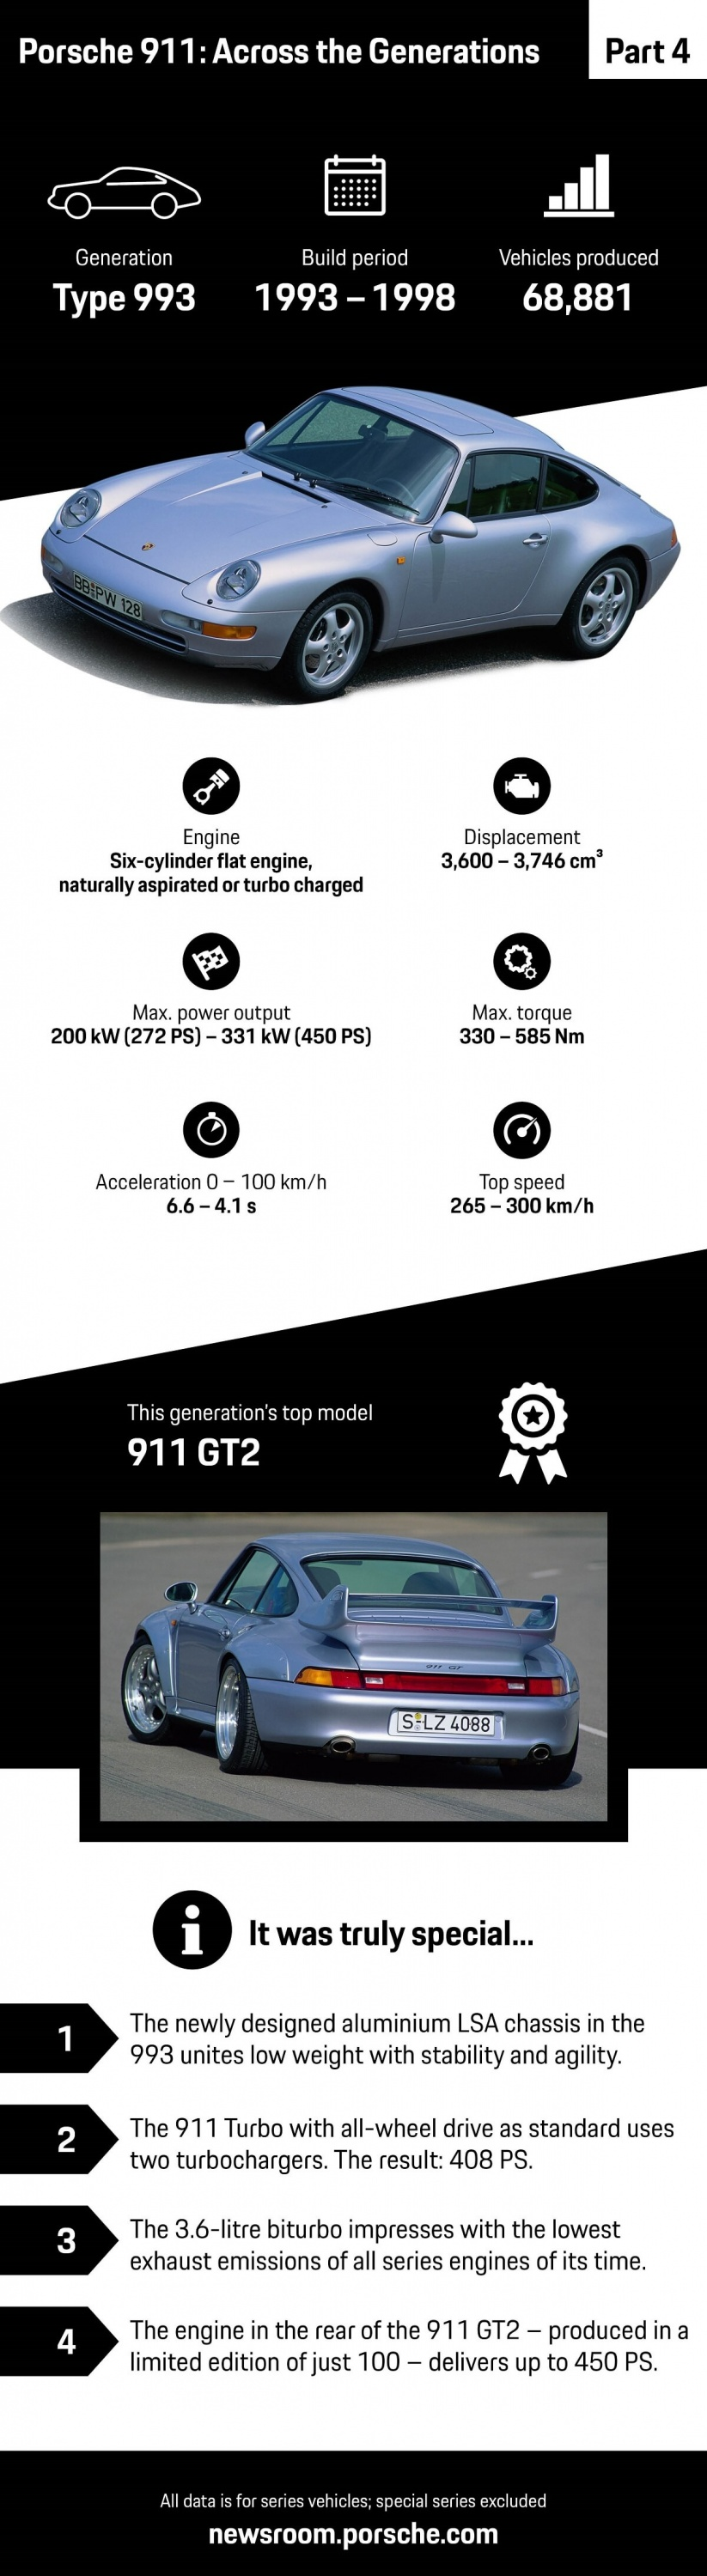 1172803_porsche_911_across_the_generations_part_4_infographic_2018_porsche_ag.jpg